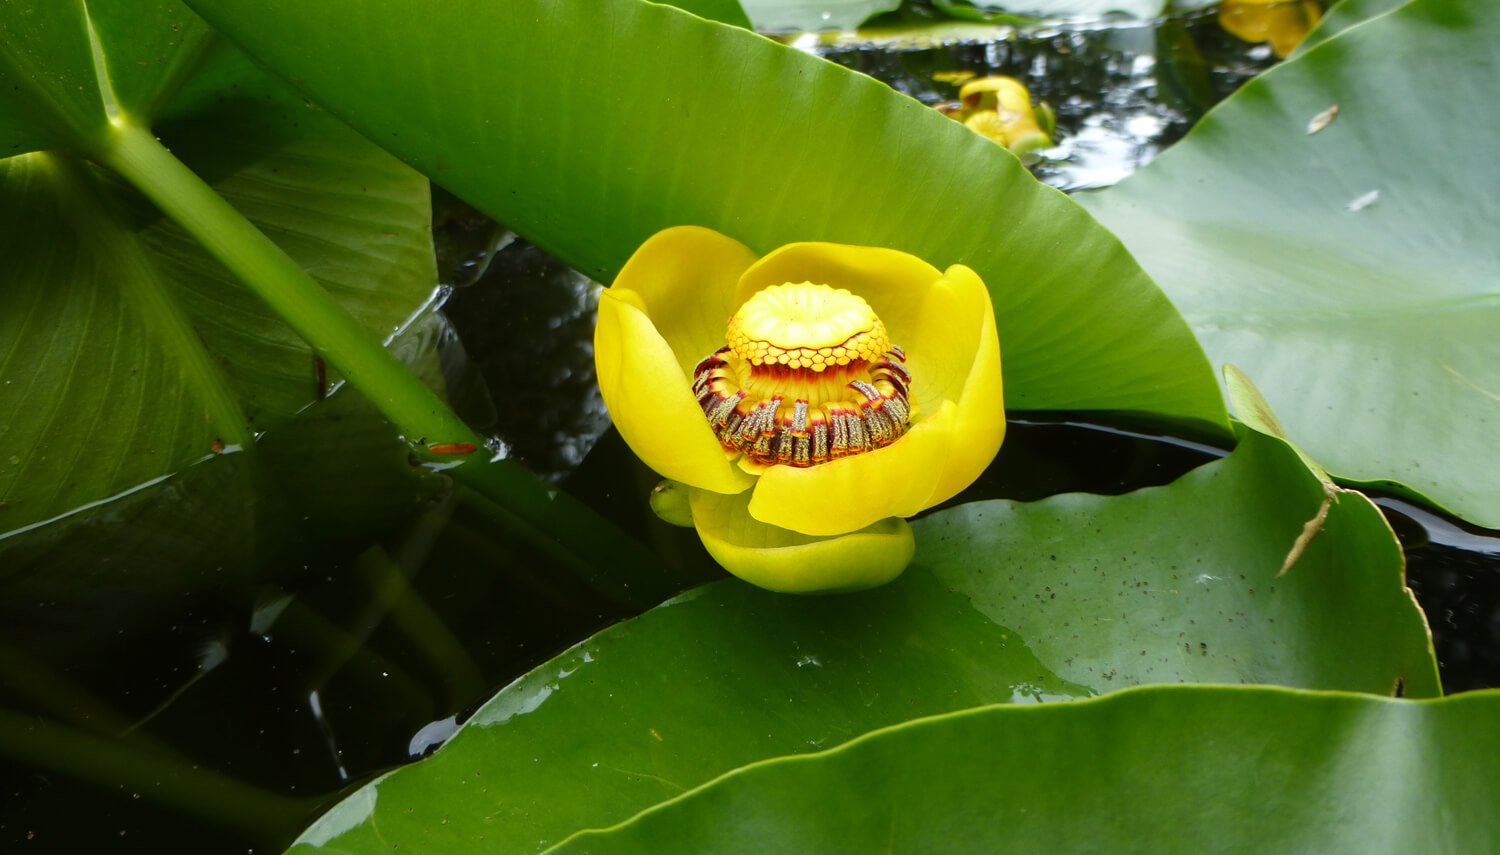 Single perfect yellow lily blossom amid green lily pads on the pond.